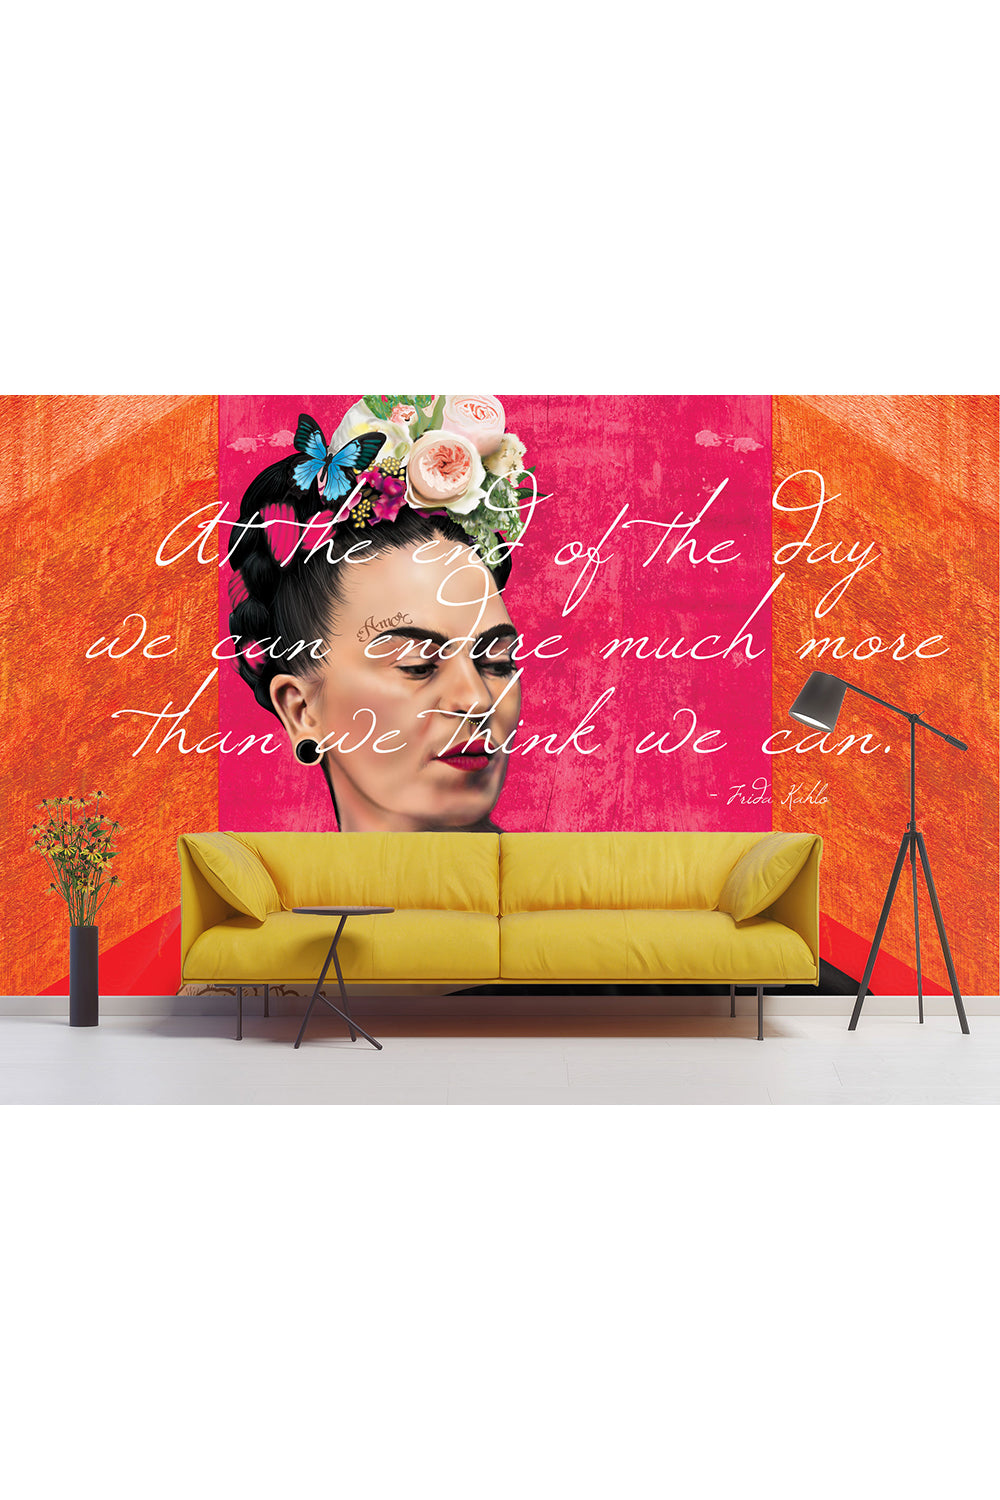 Frida Kahlo Wallpaper online NZ / Custom Wallpaper / Designer Wallpaper NZ / Designer NZ / Annah Stretton NZ / Custom Wallpaper NZ